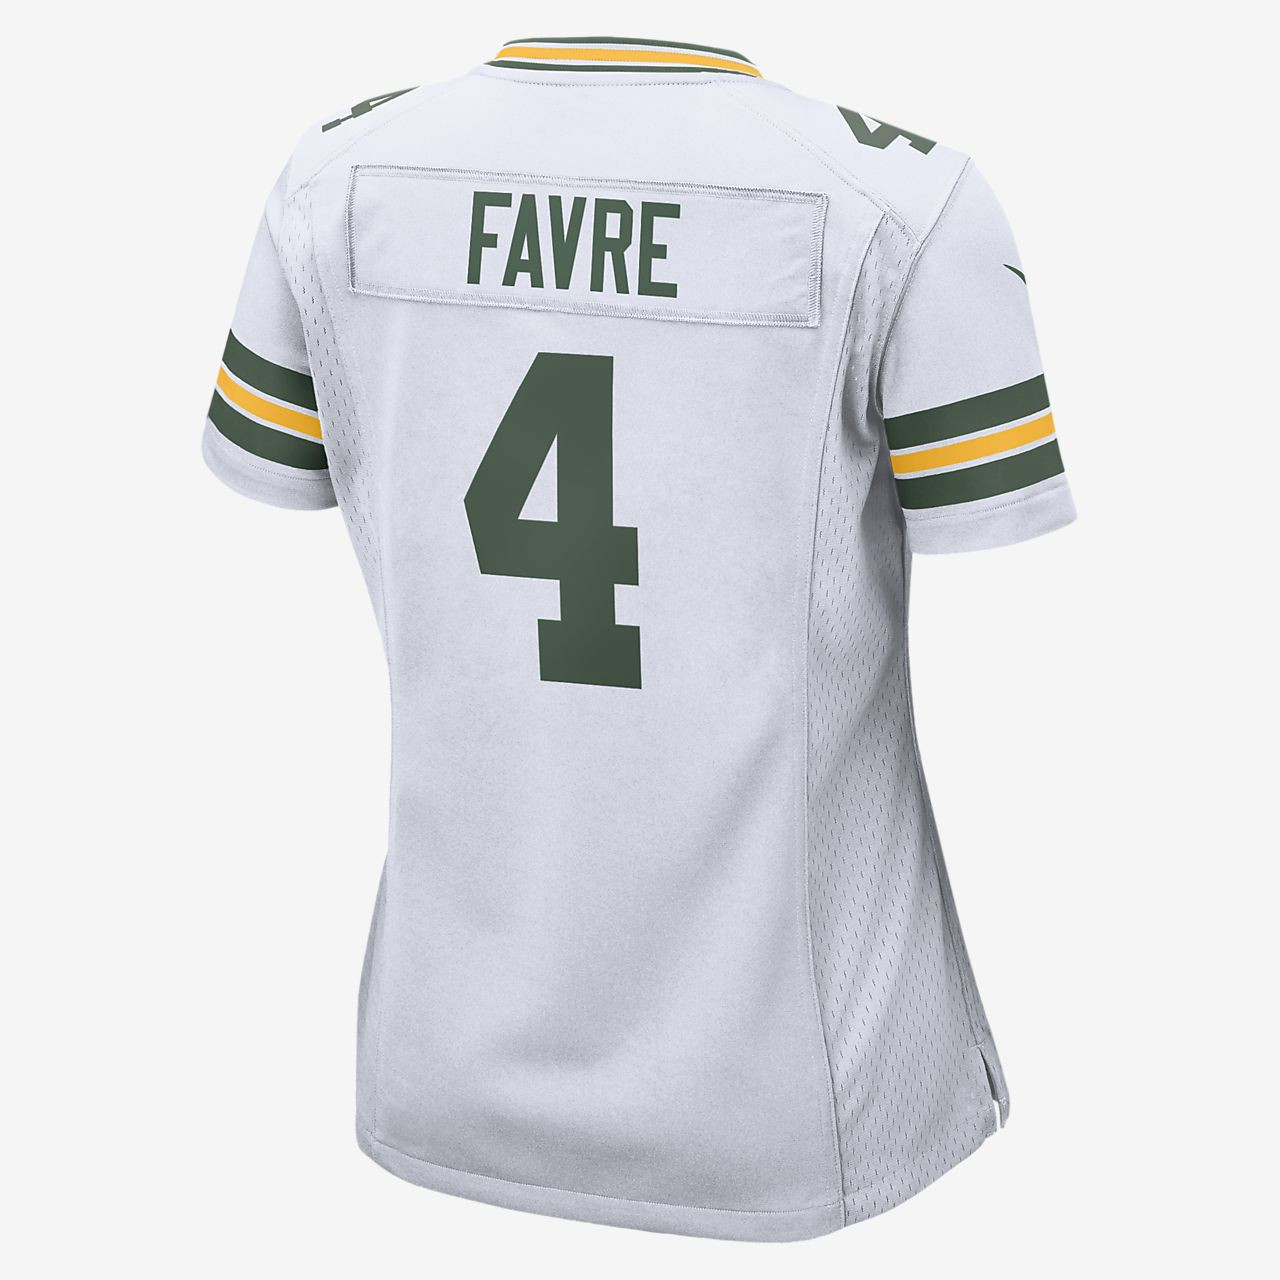 d27878f65 Nike Nfl Green Bay Packers (Brett Favre) Women s Football Home Game Jersey  - XS